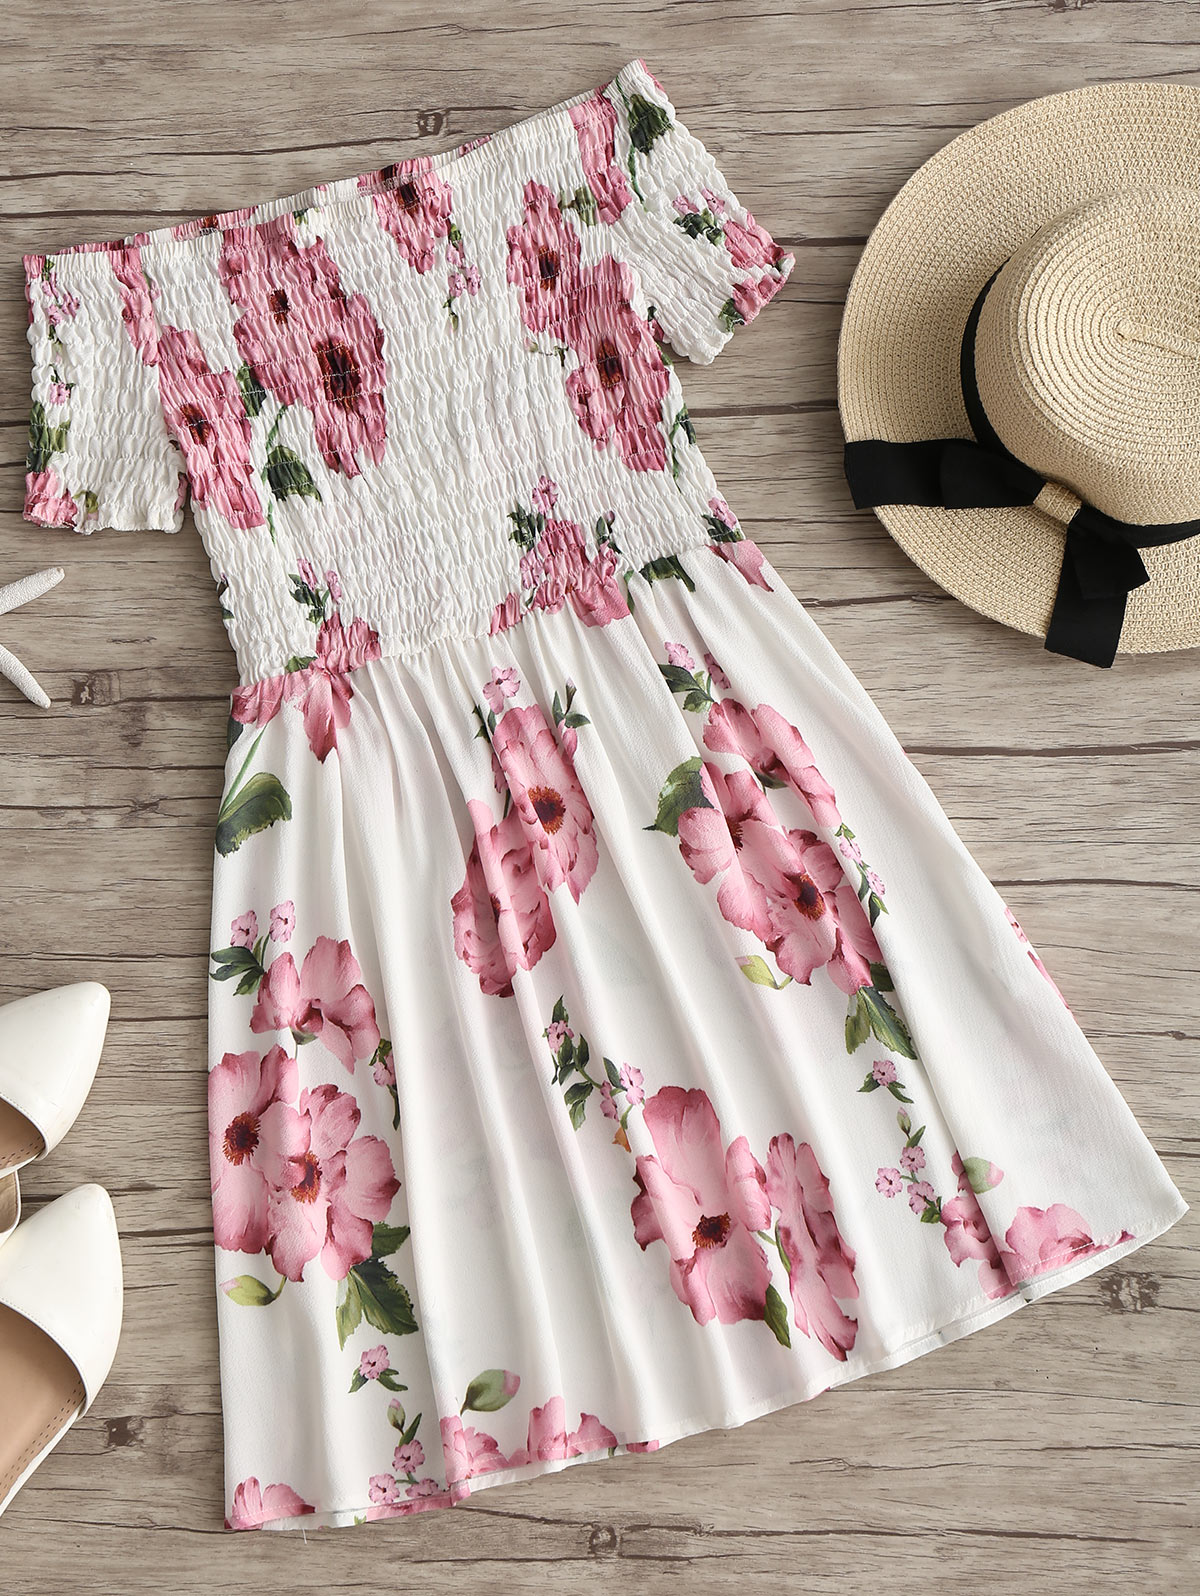 HTB1l4B2n63z9KJjy0Fmq6xiwXXau - Off Shoulder Smocked Flower Flare Dress JKP343